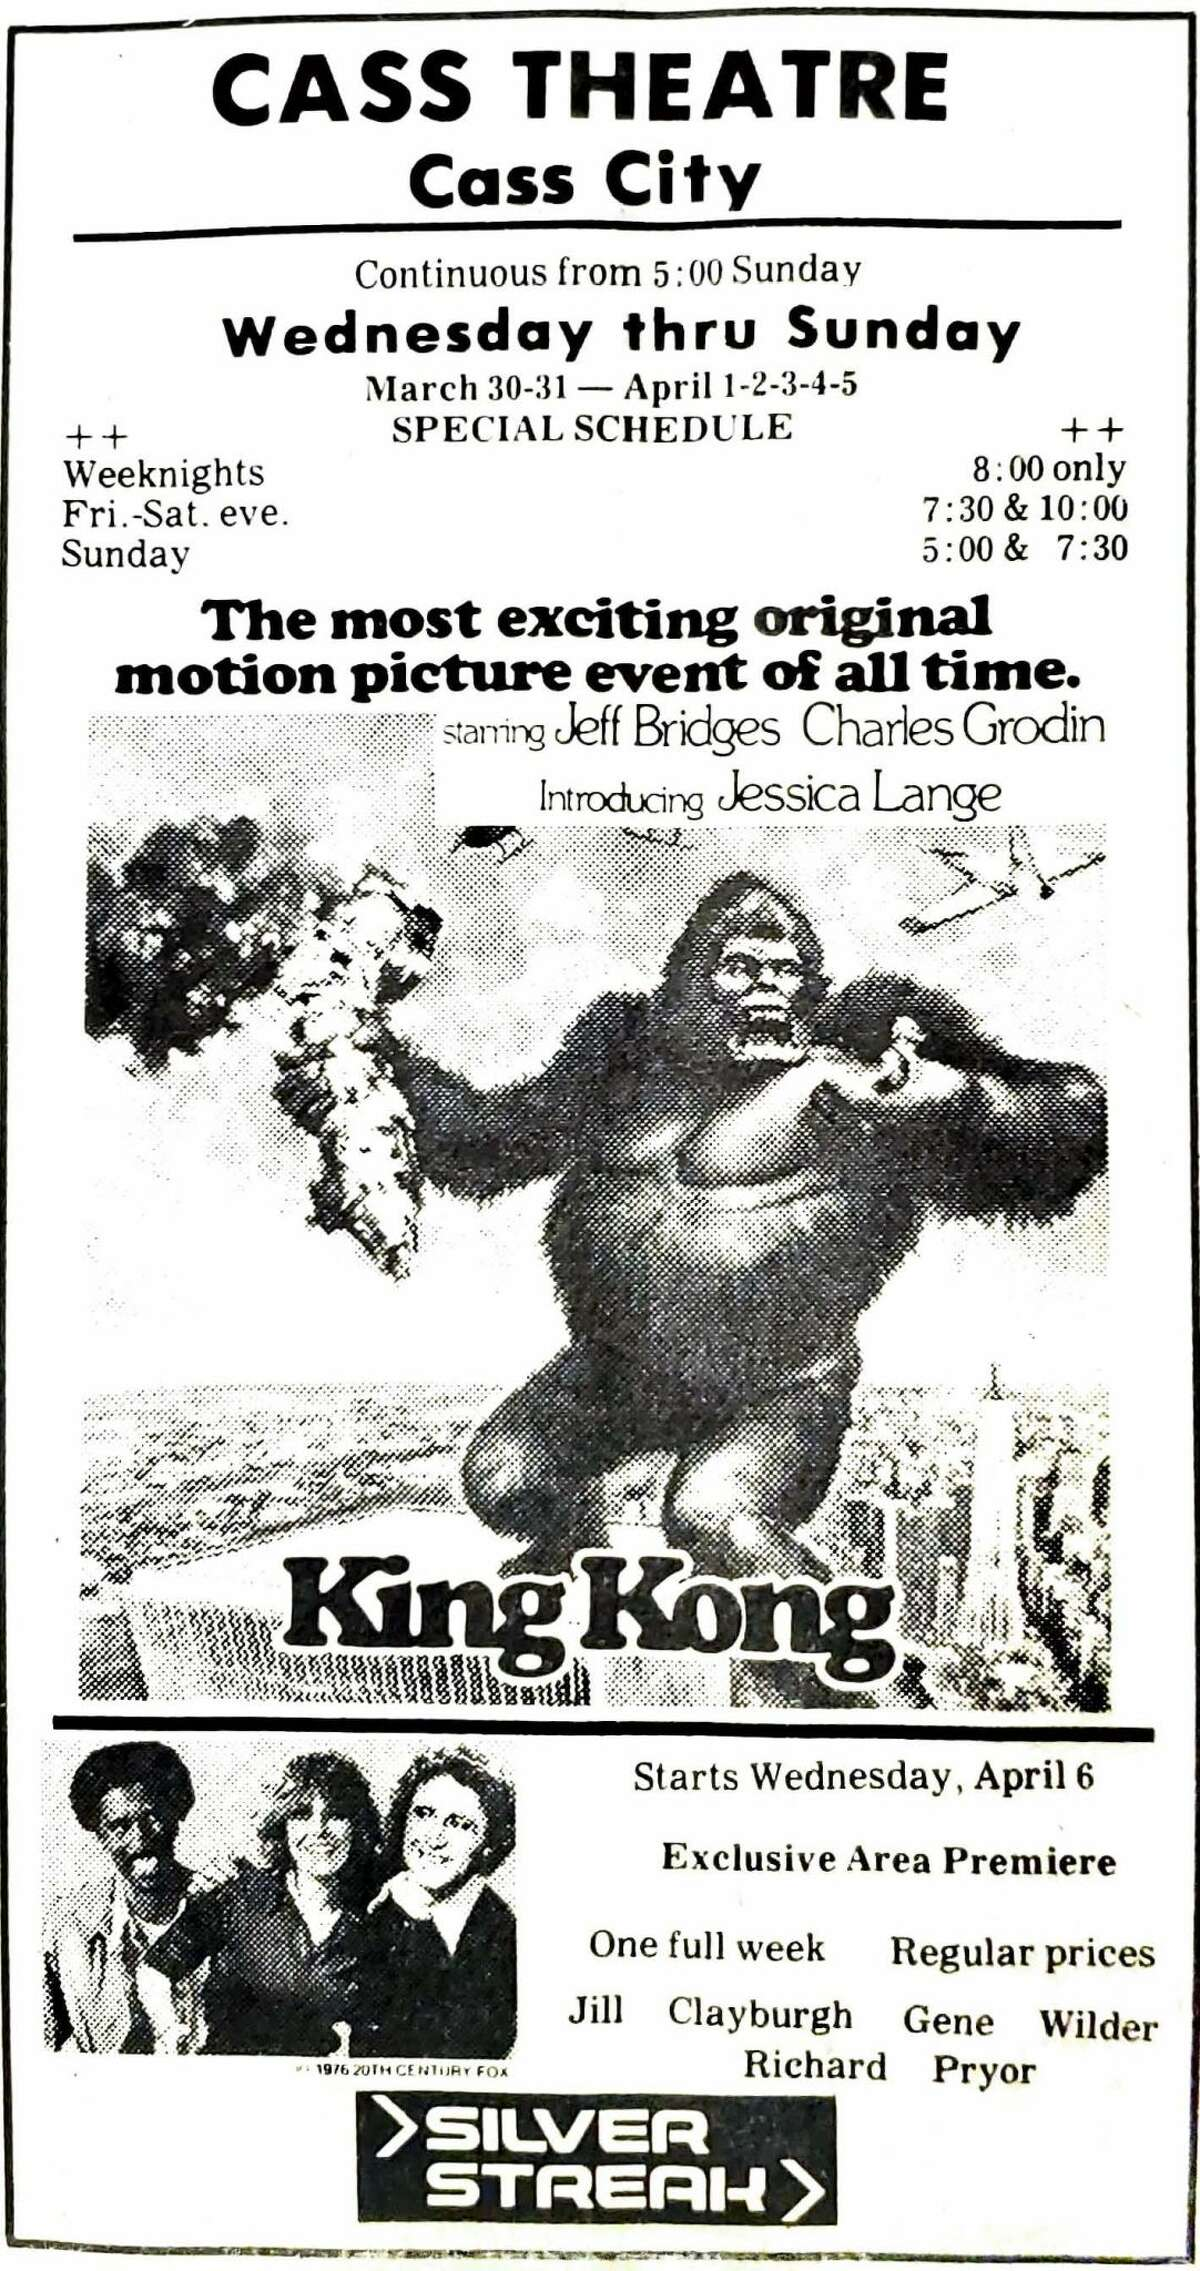 King Kong is back on the big screen this year as well.